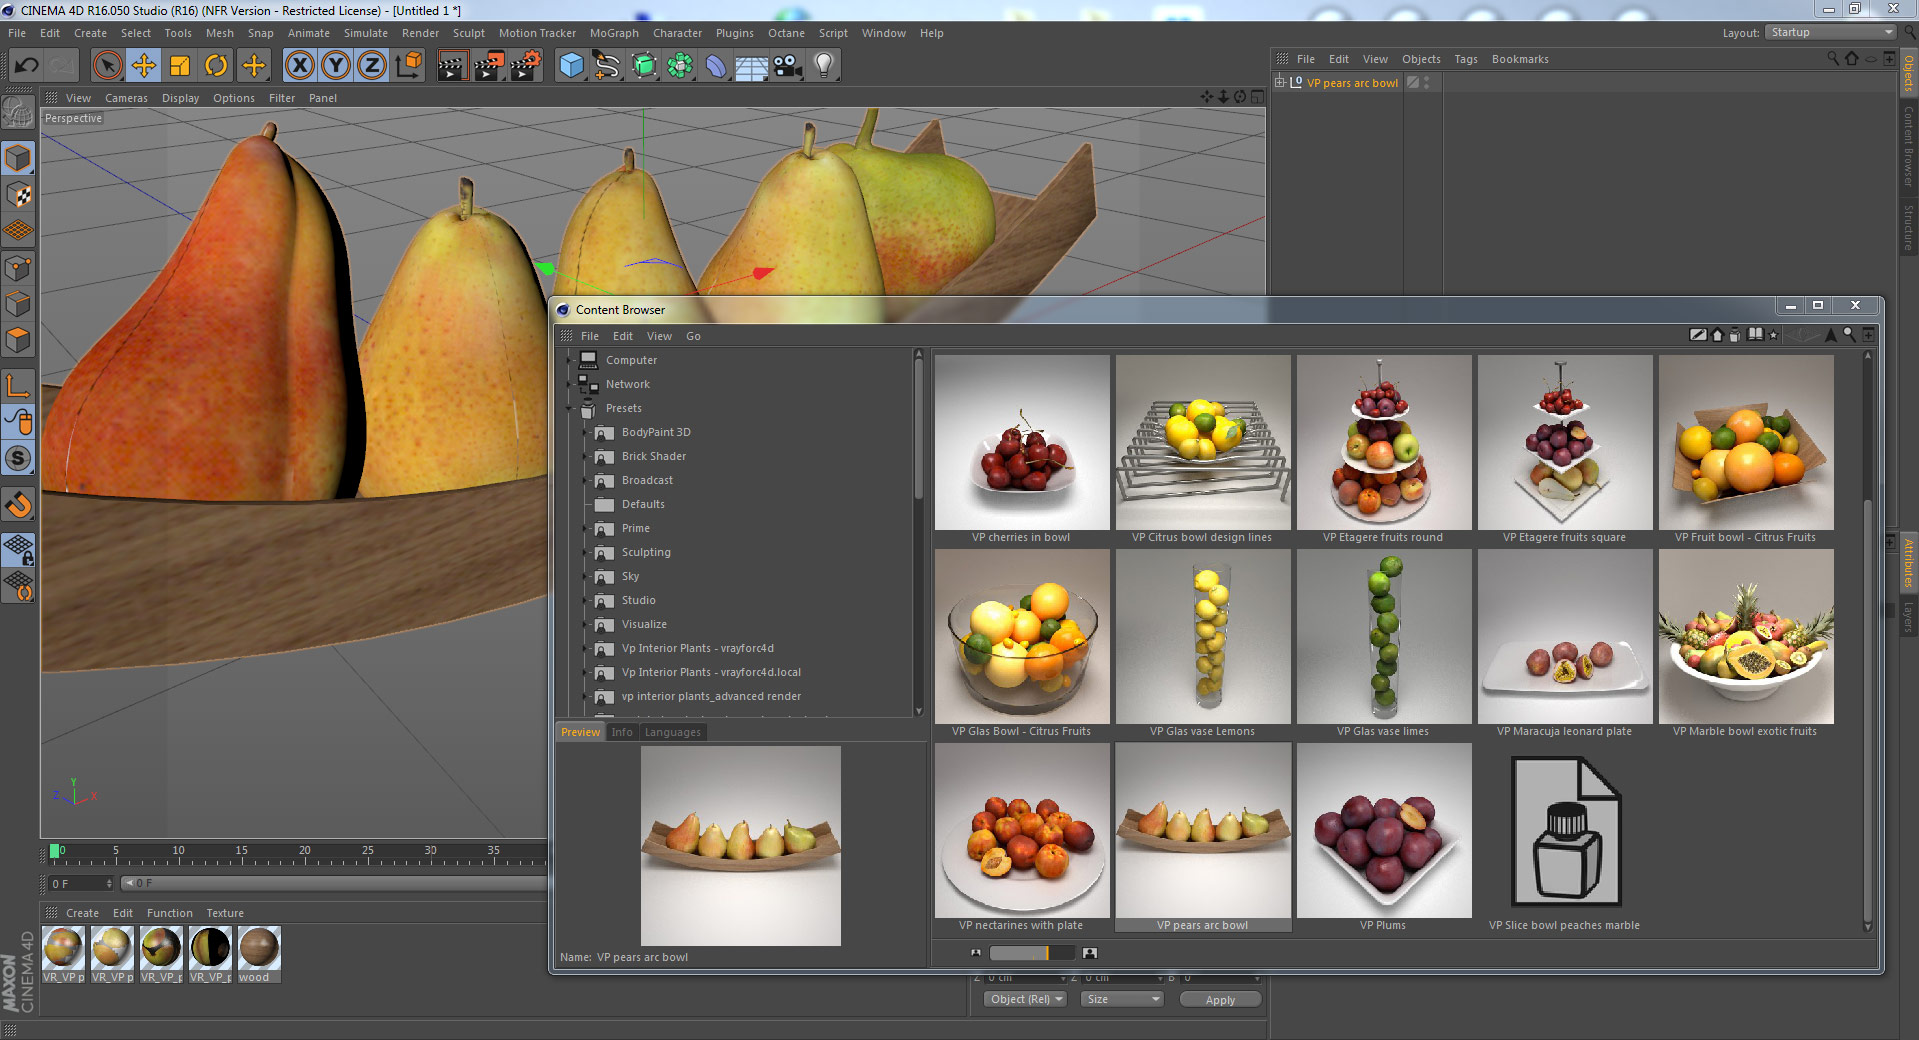 VP | REAL FRUITS - 90 highly realistic 3D fruit models